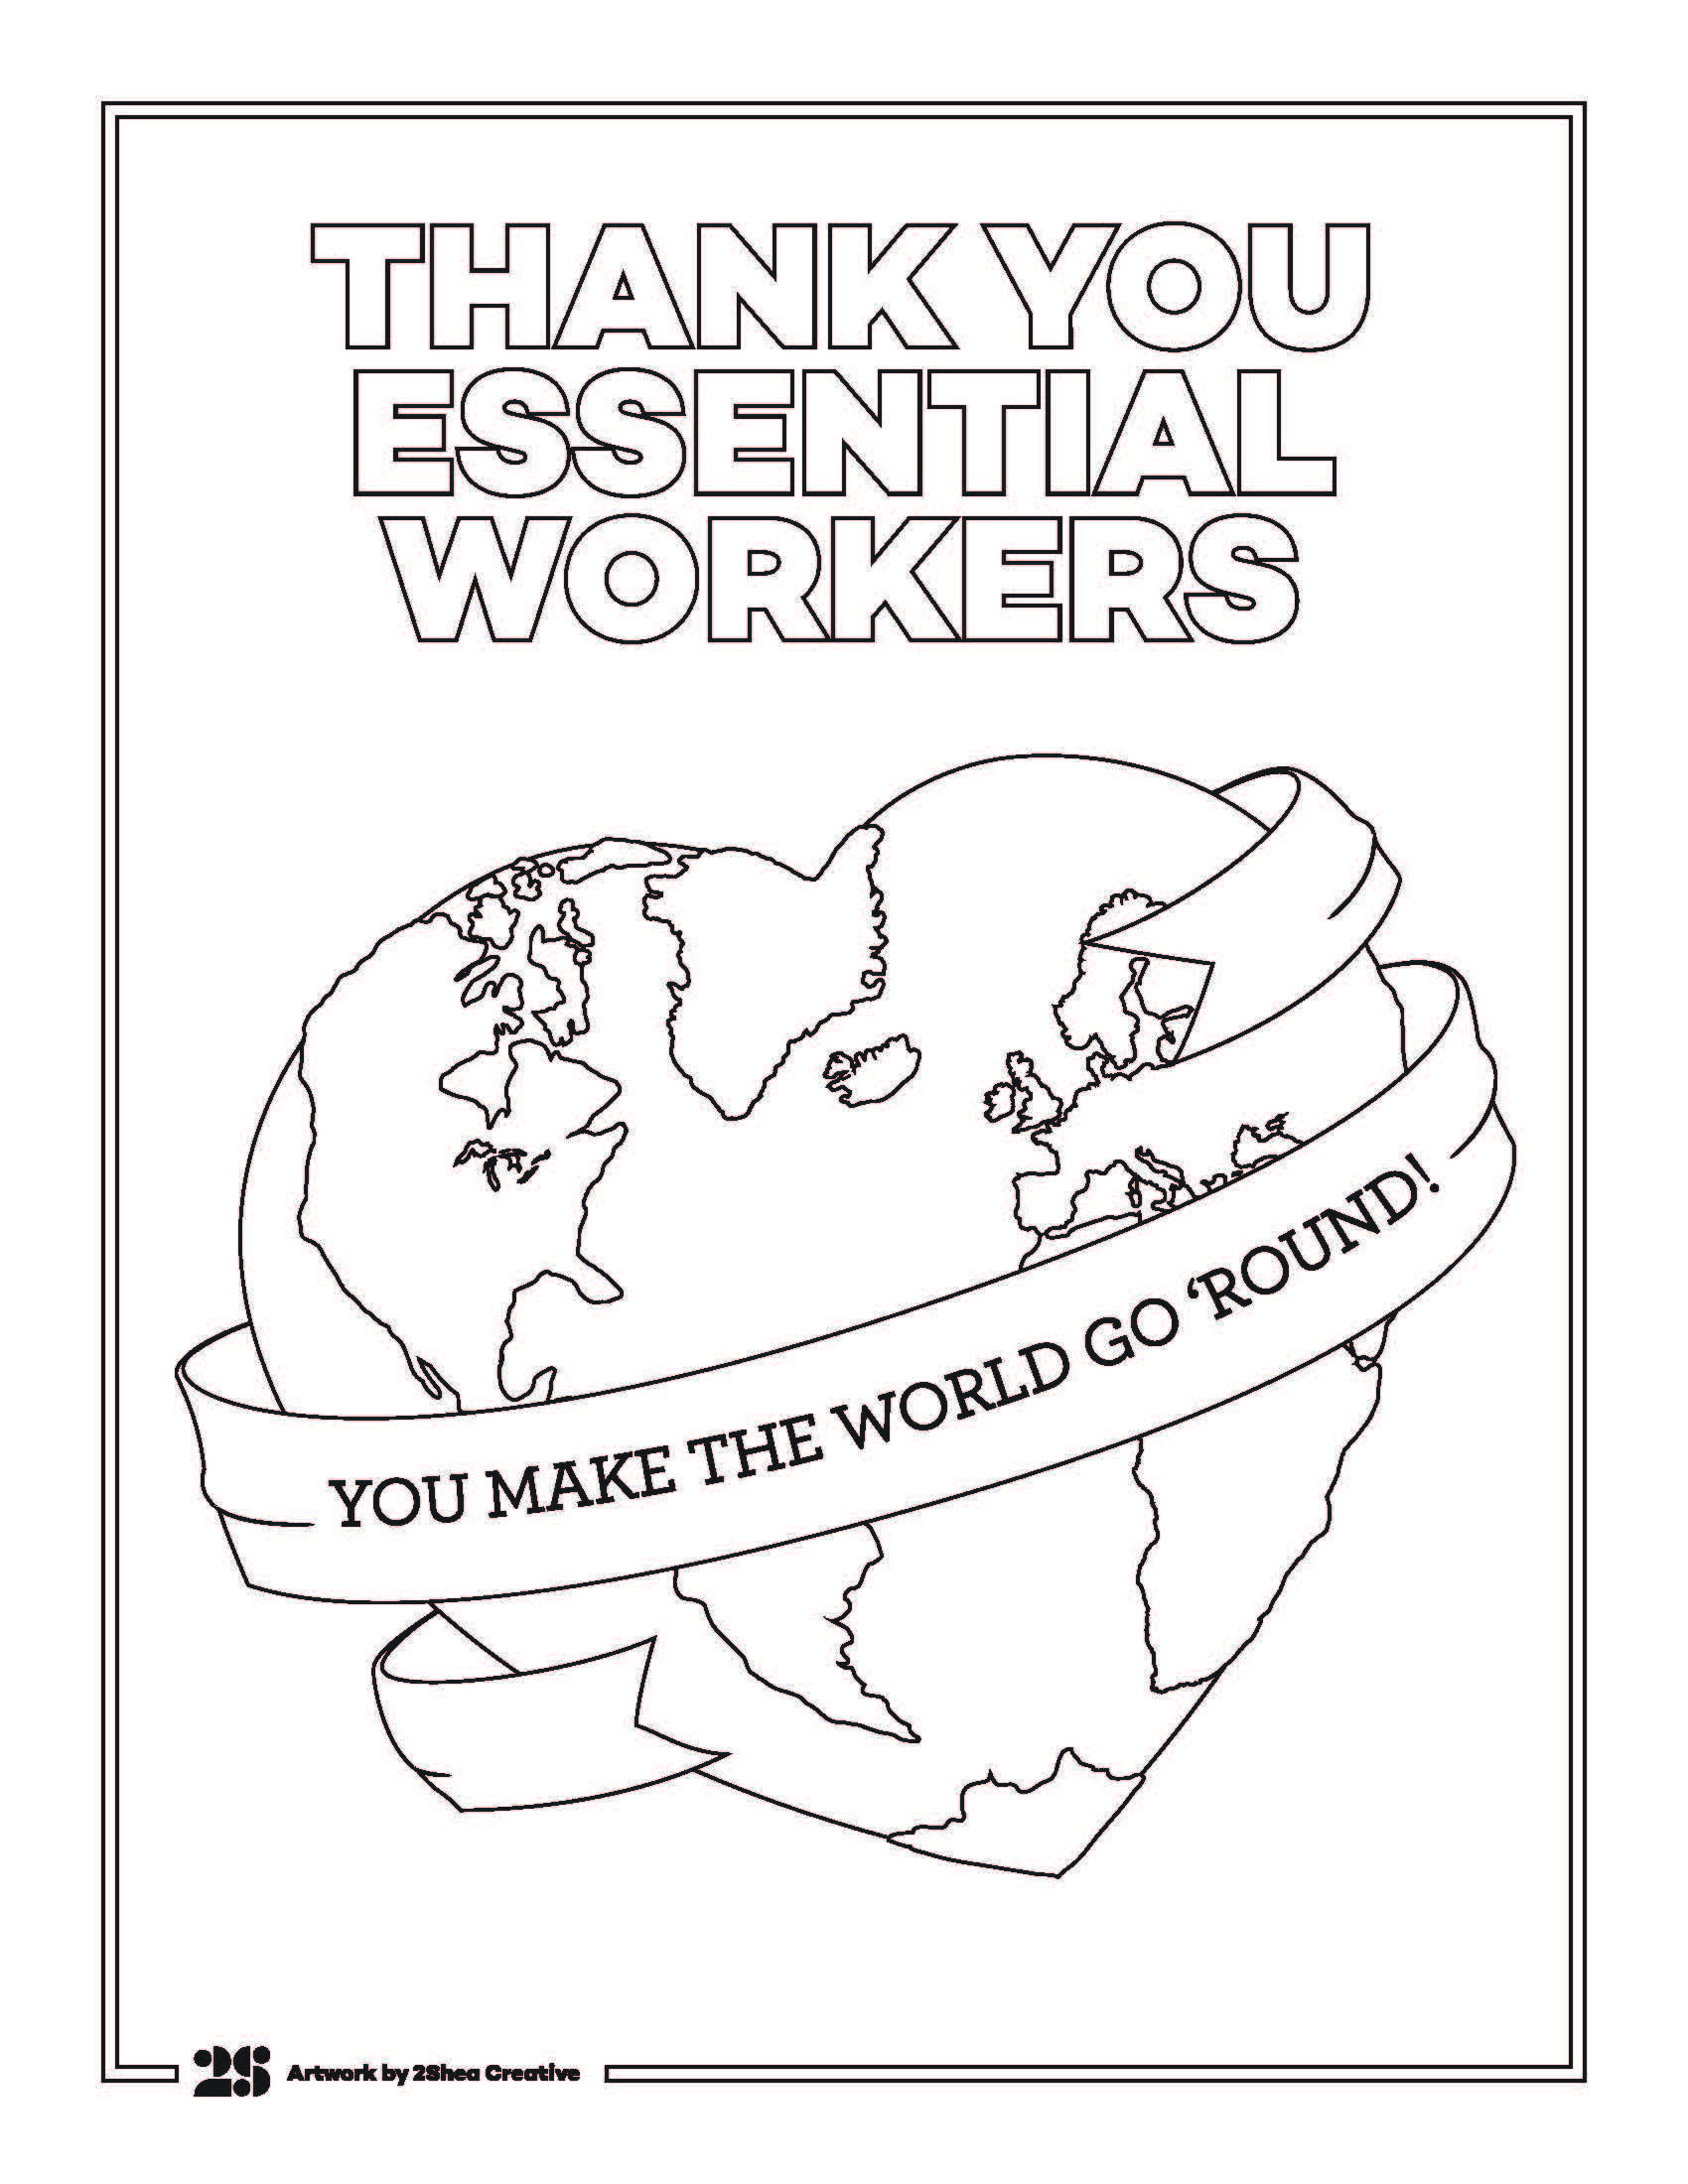 We Created This Coloring Page To Show Our Gratitude For All The Essential Worker Lifolop Coloring Pages Nurse Art Coloring Books